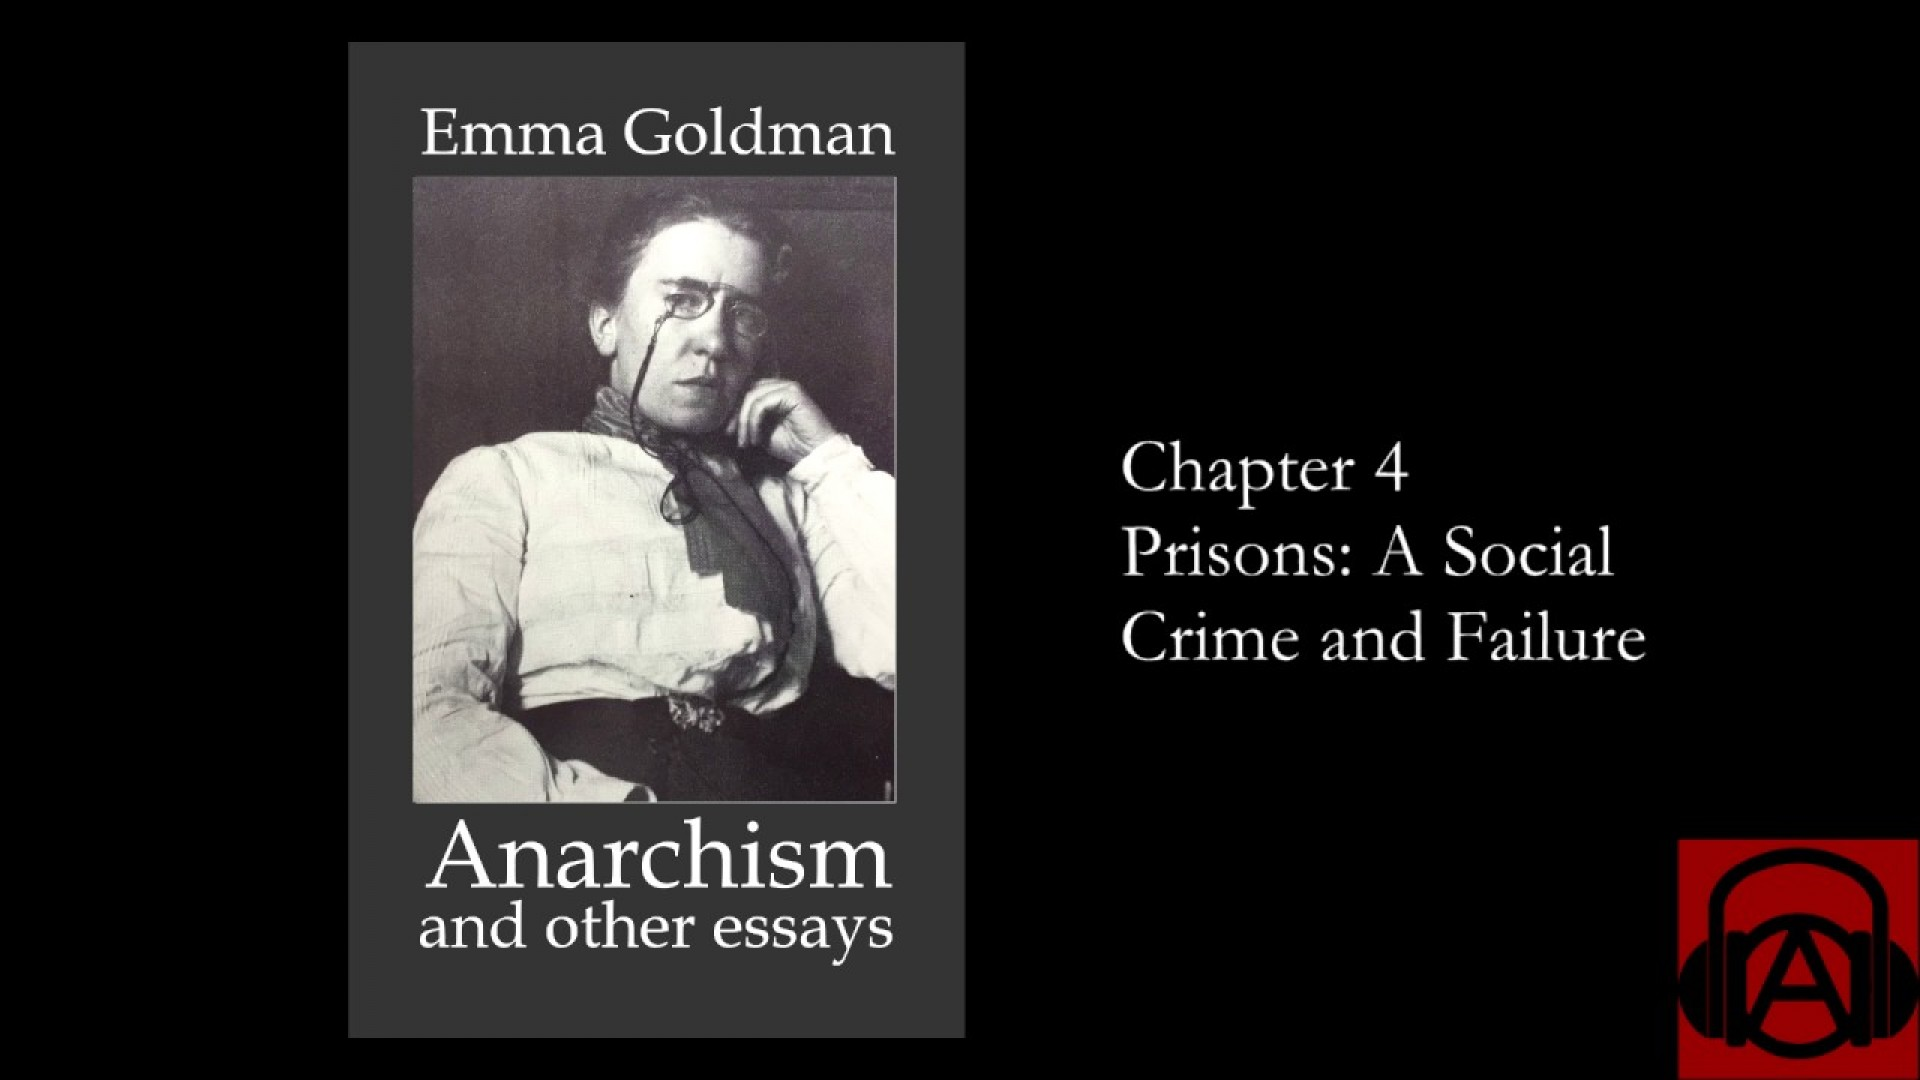 004 Anarchism And Other Essays Essay Example Incredible Emma Goldman Summary Mla Citation 1920